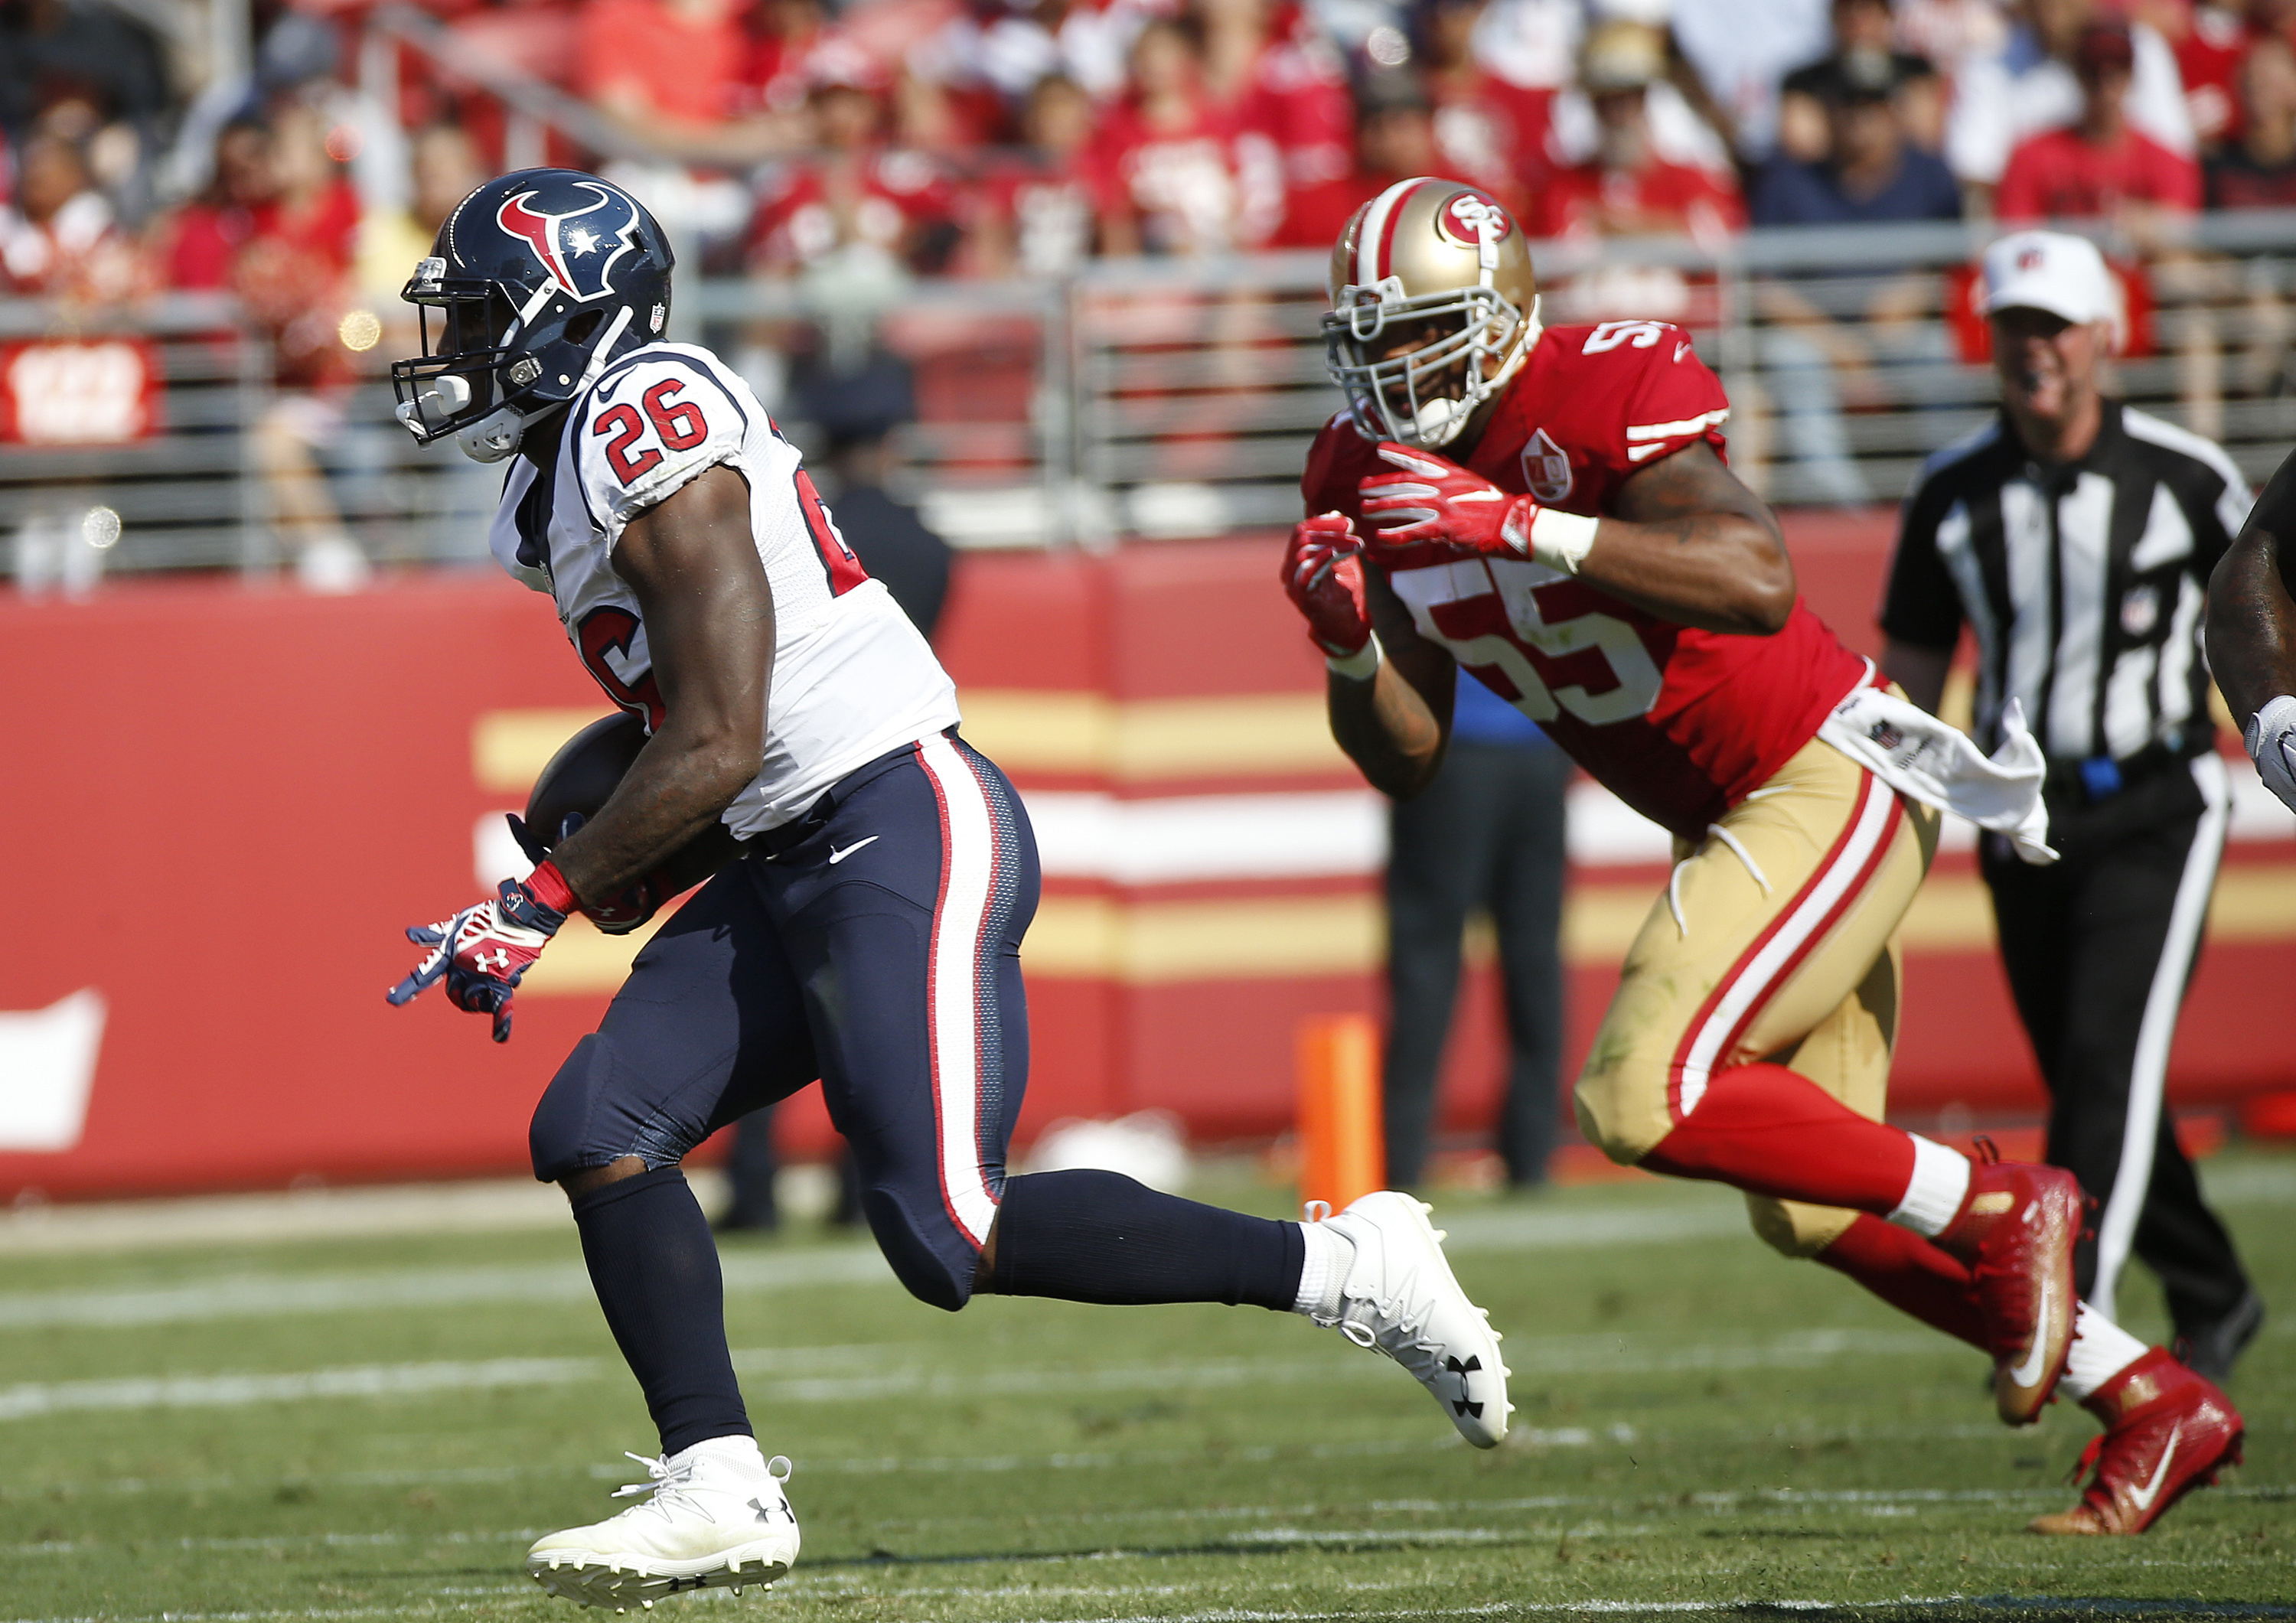 FILE - In this Aug. 14, 2016, file photo, Houston Texans running back Lamar Miller, left, carries the ball past San Francisco 49ers outside linebacker Ahmad Brooks, right, during the first half of an NFL preseason football game, in Santa Clara, Calif. Mil